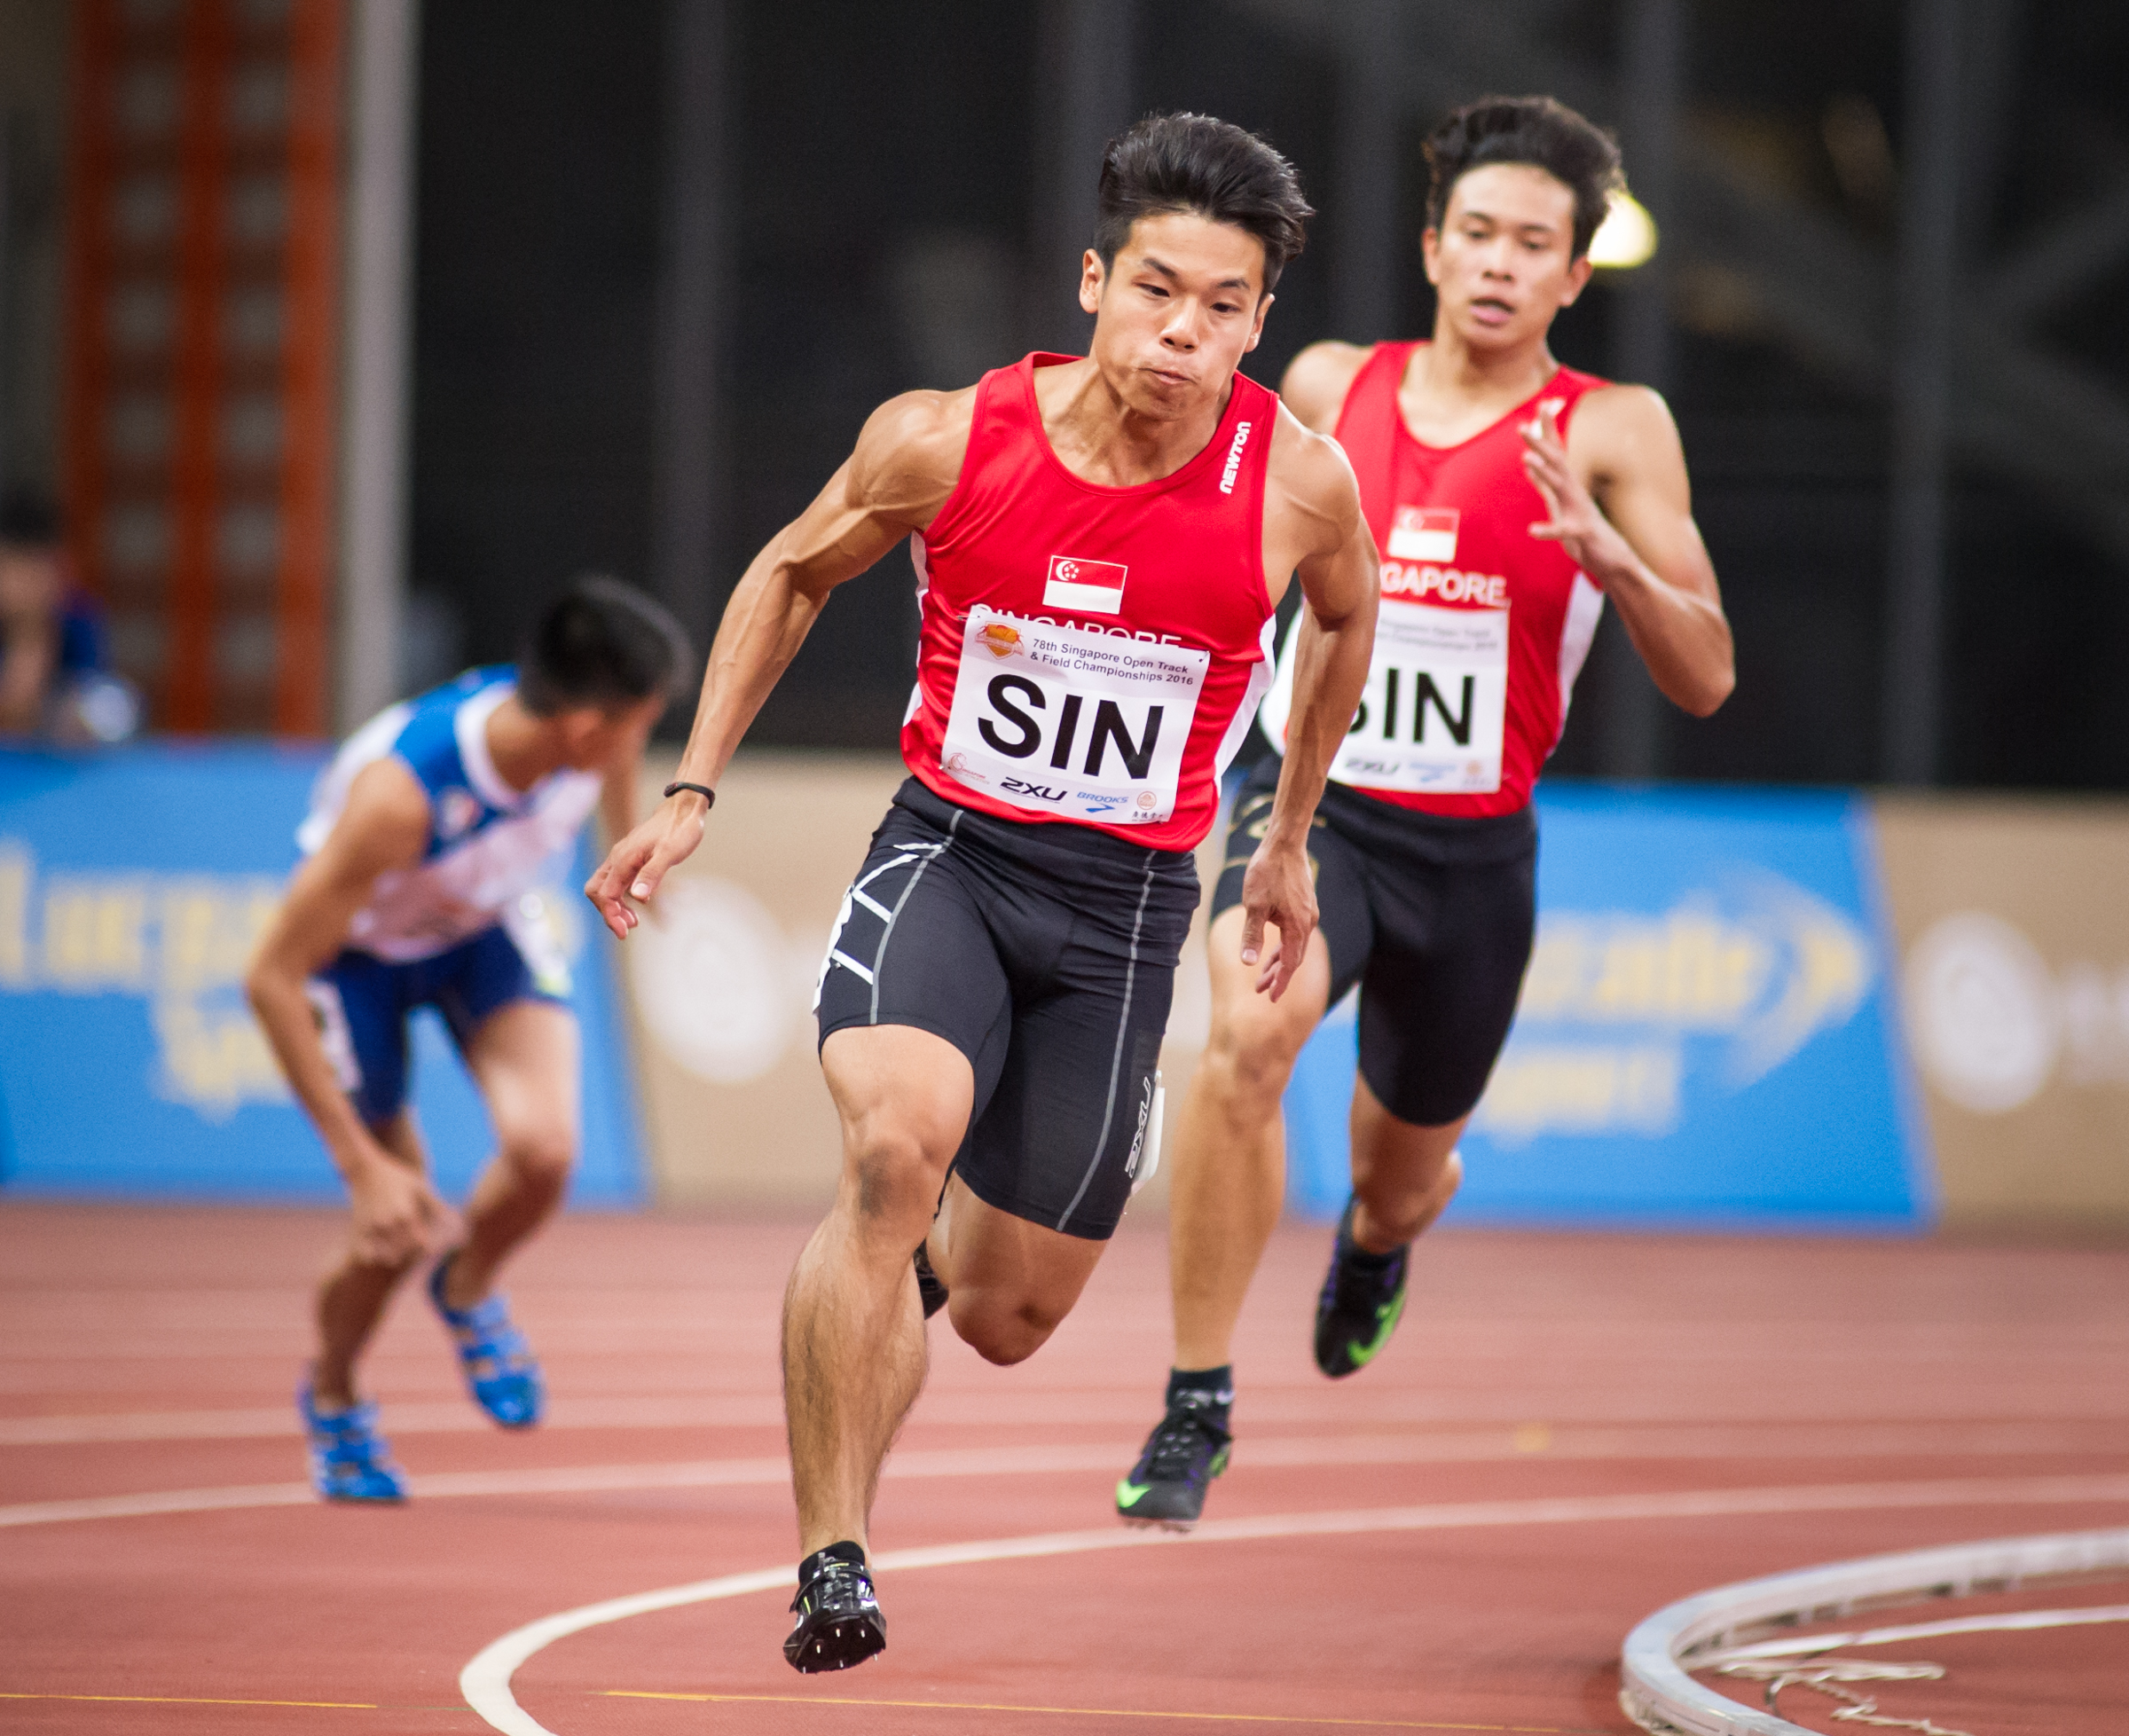 A Singaporean runner prepares to receive the baton during the Singapore Open Track and Field Championships held at the Singapore Sports Hub.